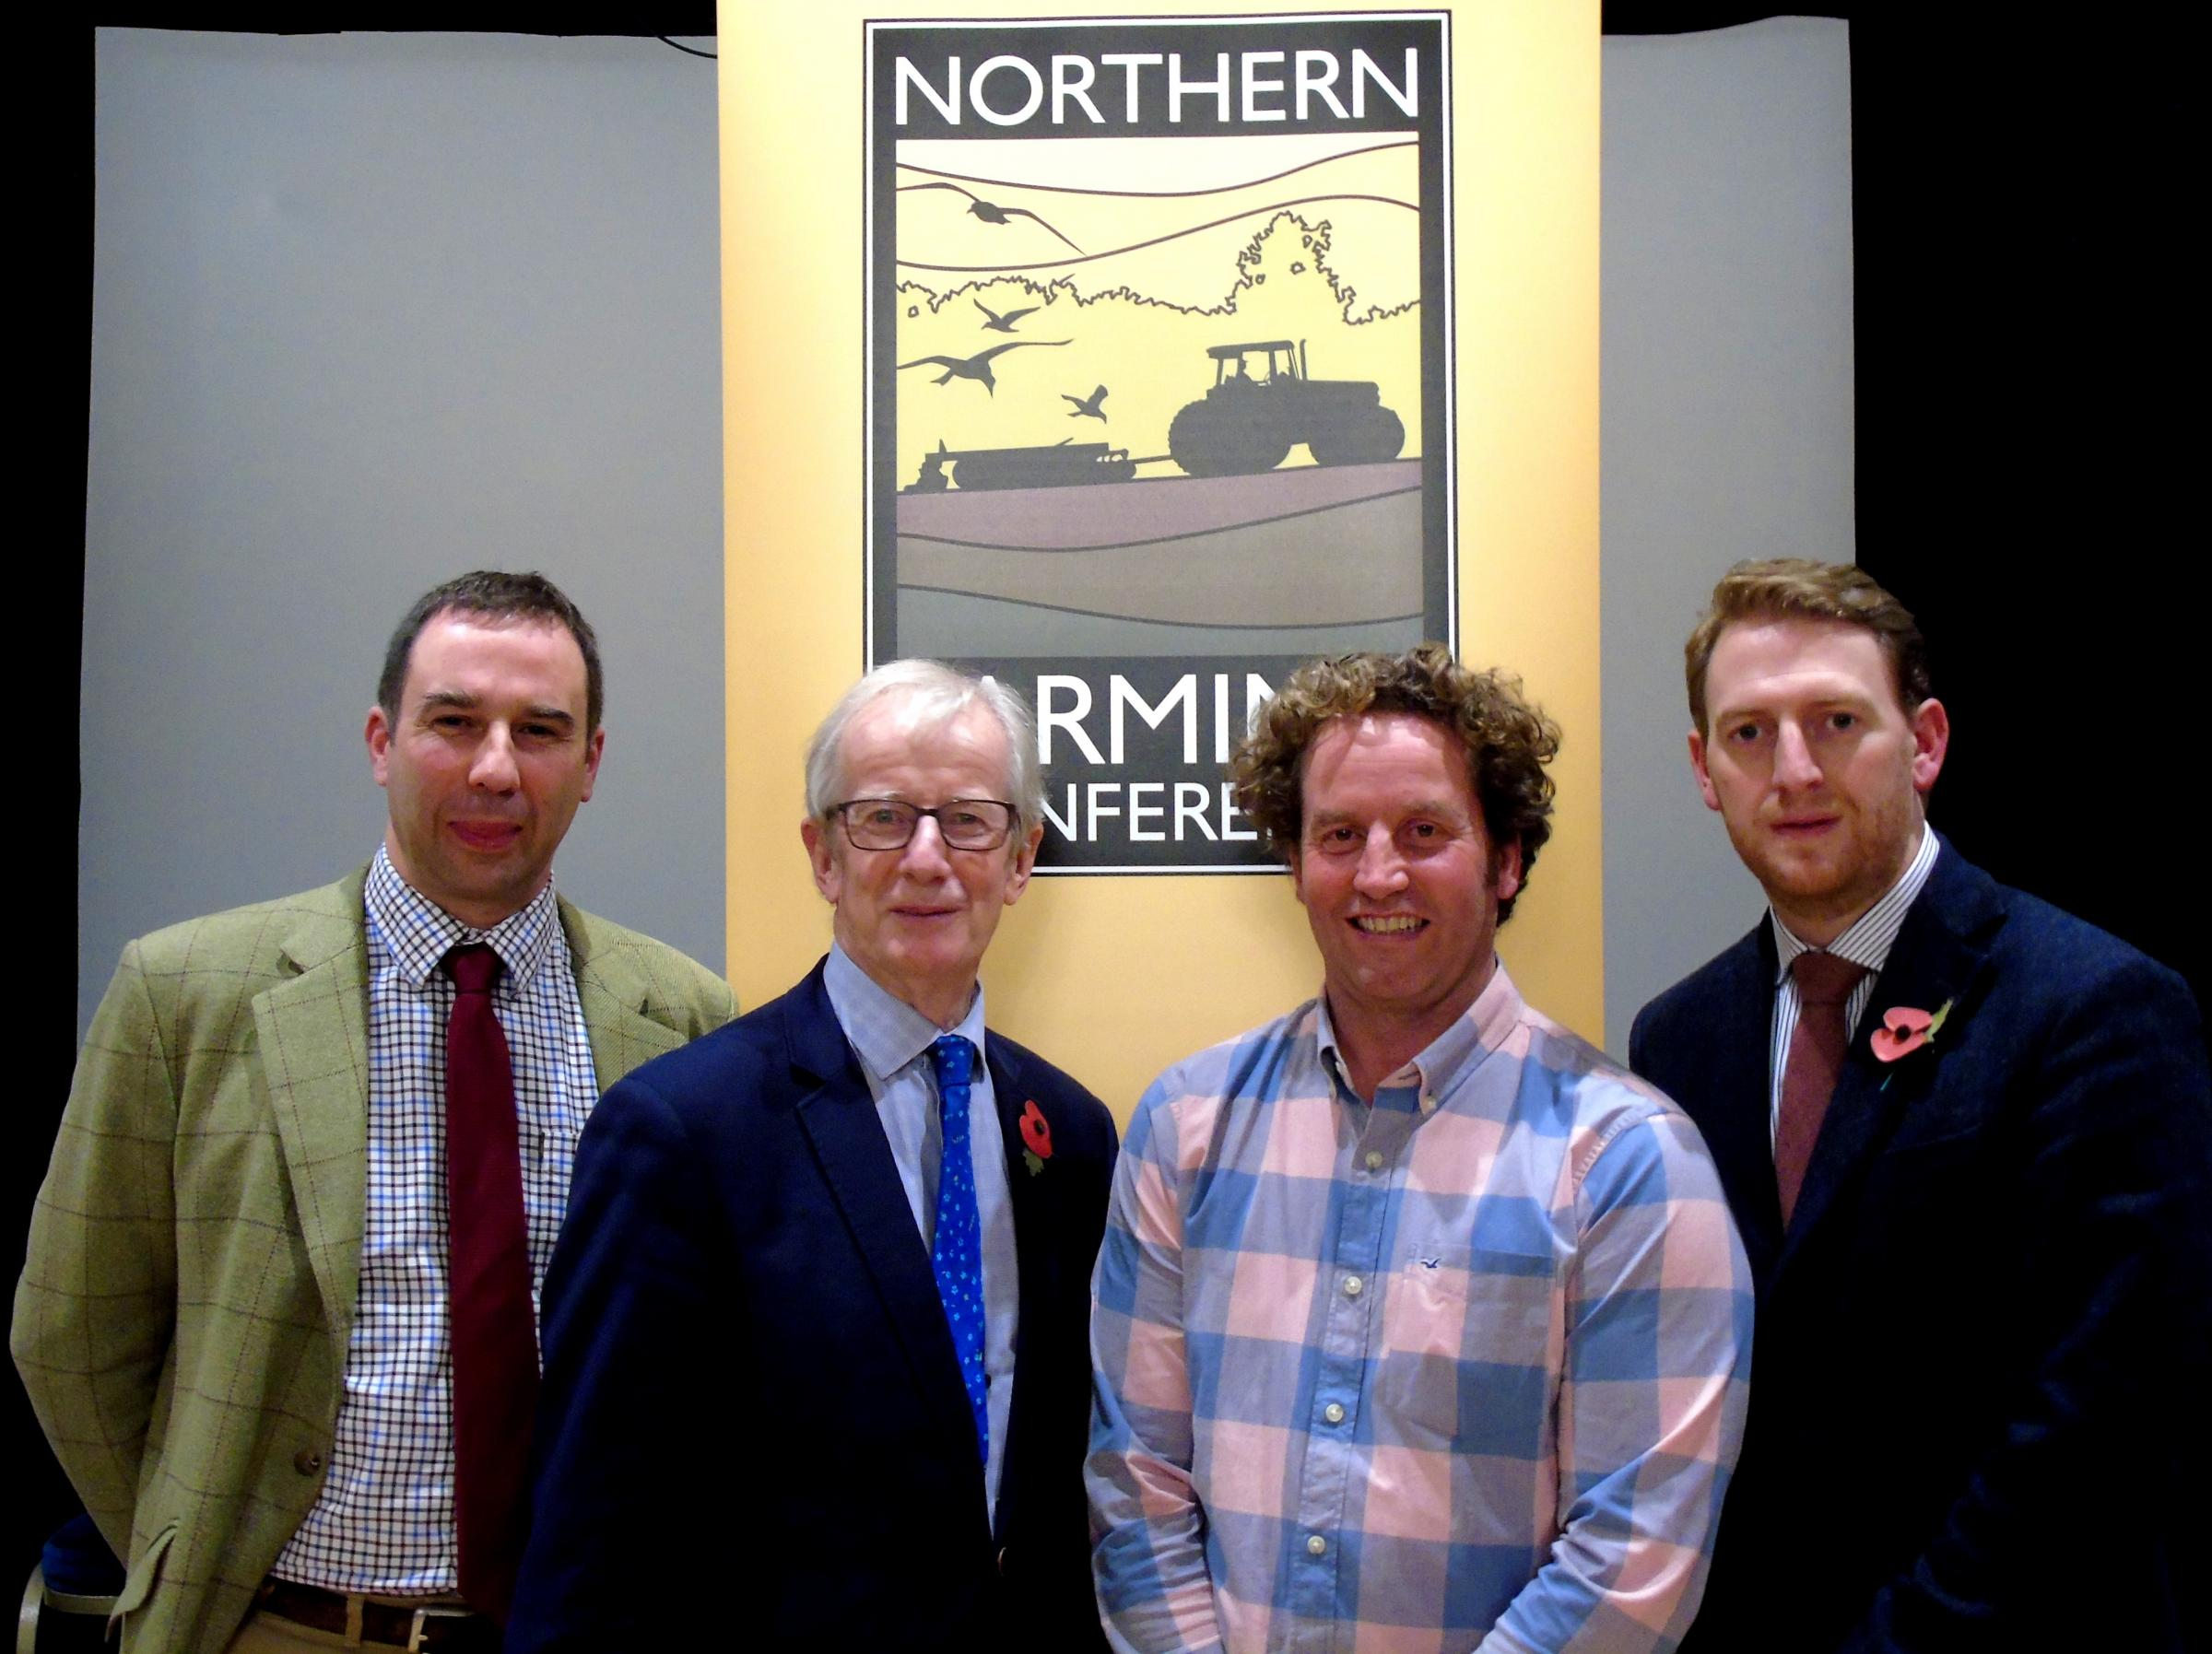 James Standen, farms director at Newcastle University; Emeritus Professor Allan Buckwell; Neil Heseltine, of Hilltop Farm, Malham; and Matthew Curry, afternoon chairman from Strutt & Parker, at the Northern Farming Conference